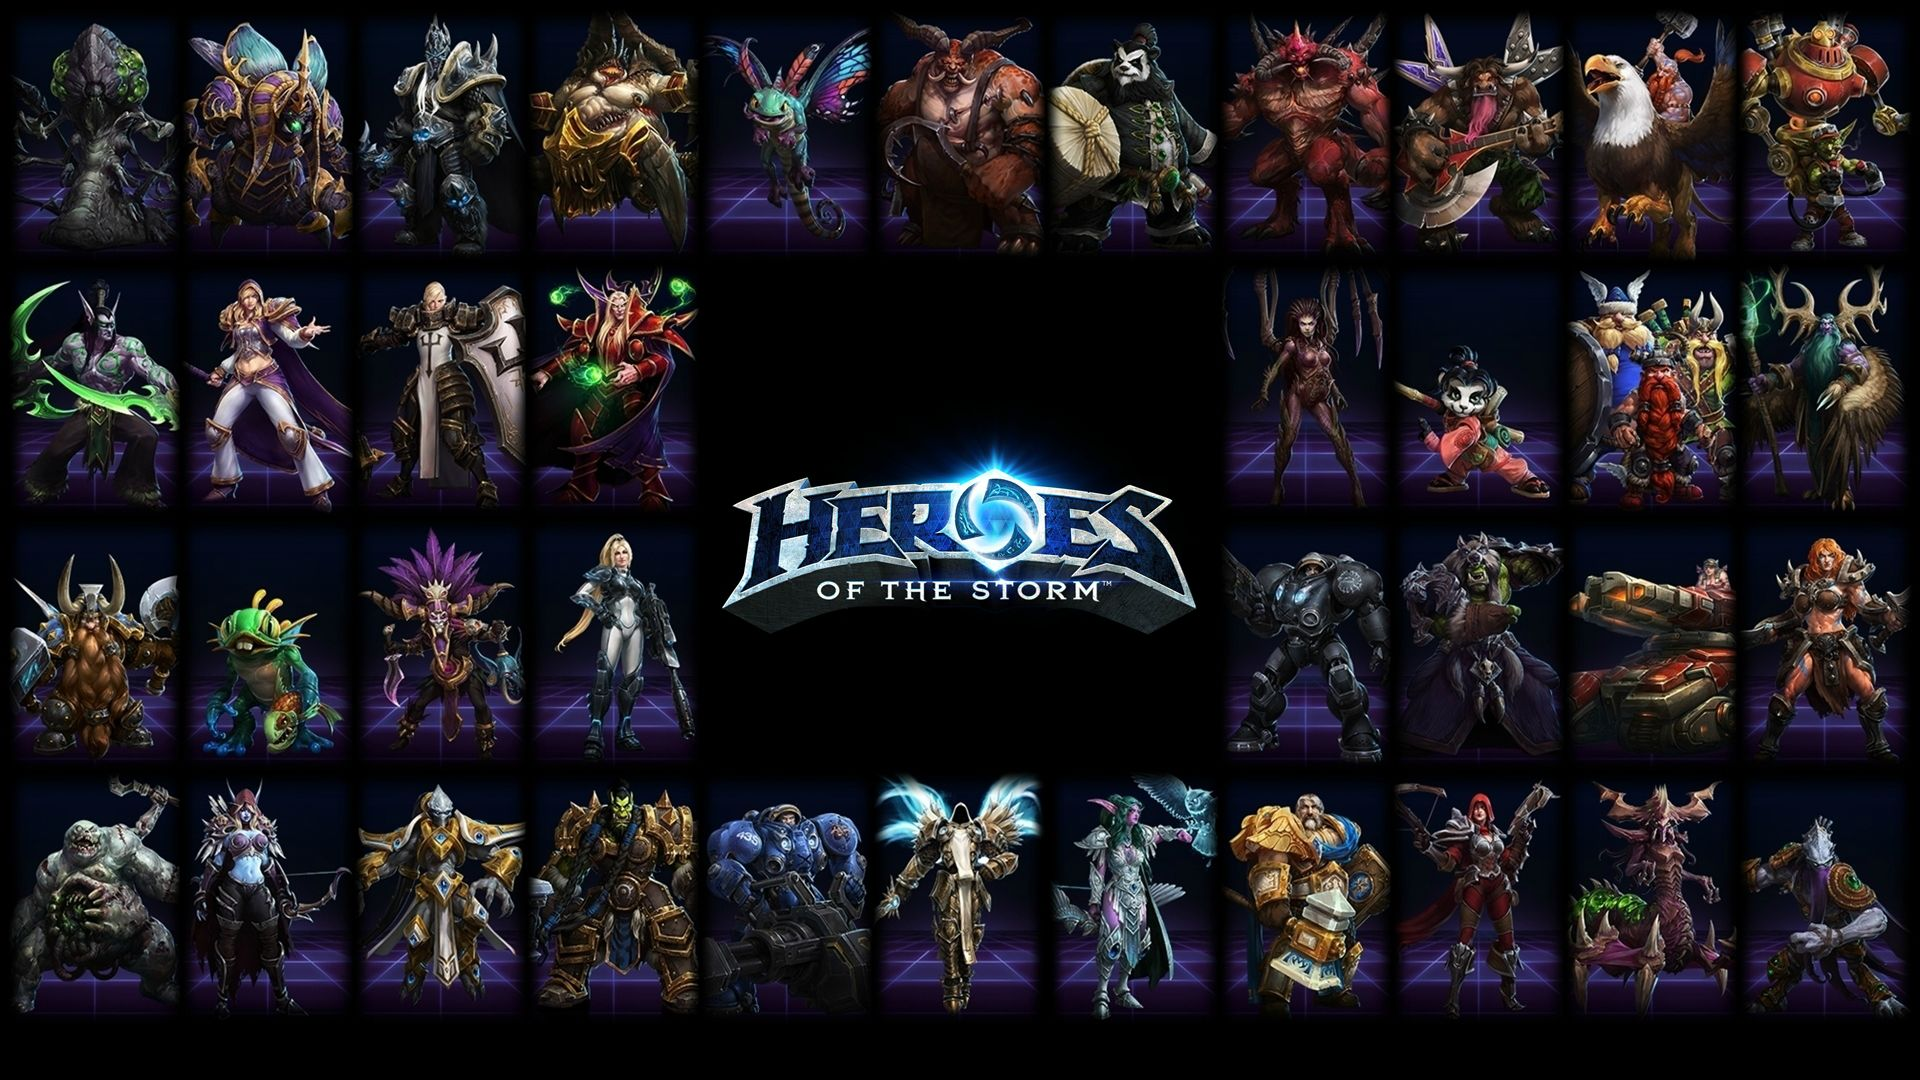 Heroes Of The Storm Wallpaper Heroes Of The Storm Wallpaper All